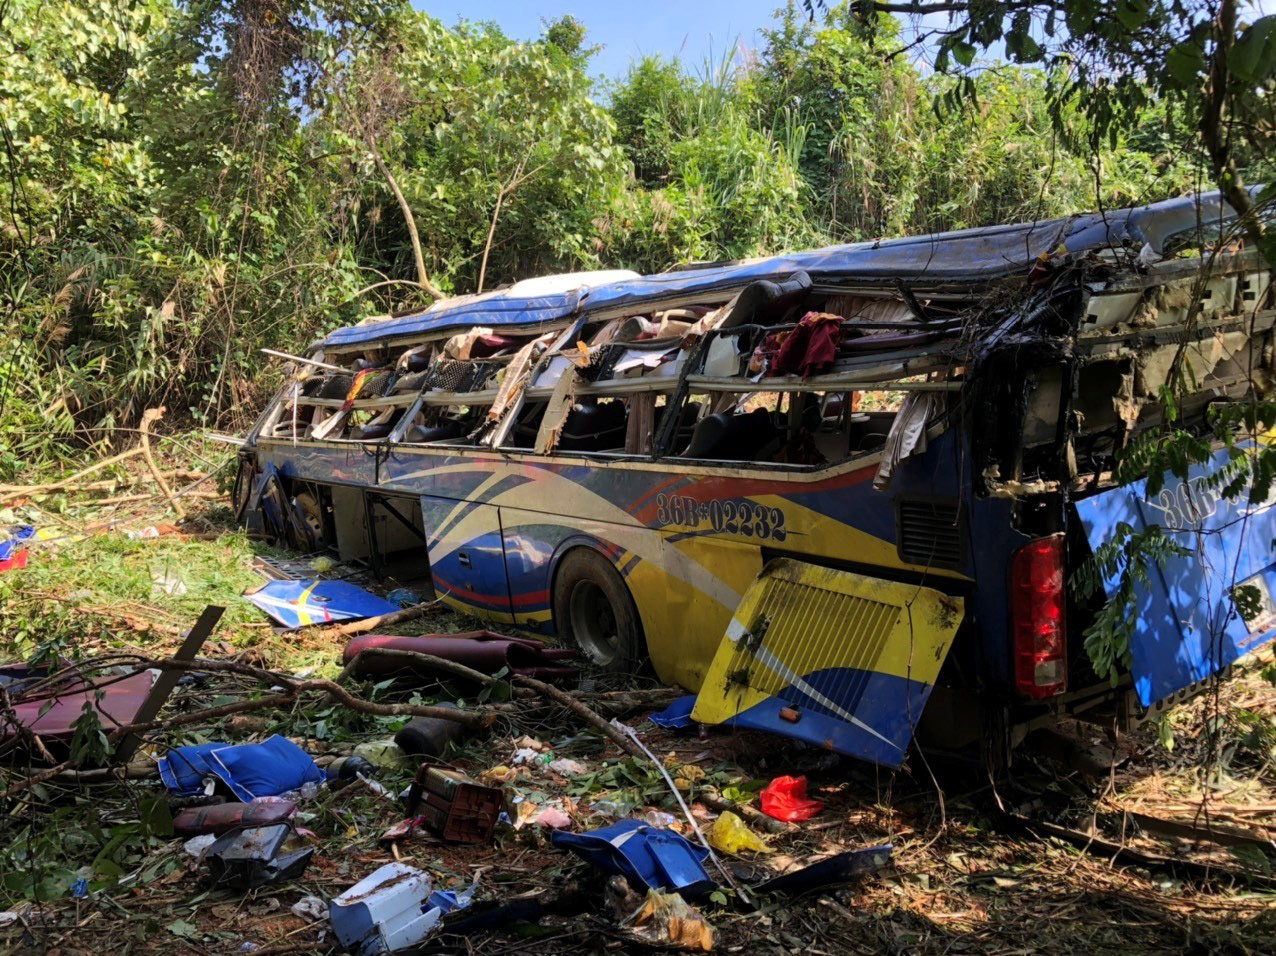 A sleeper bus is damaged after plunging off a cliff in Kon Tum Province, Vietnam, July 11, 2020. Photo: Huynh Cong Dong / Tuoi Tre